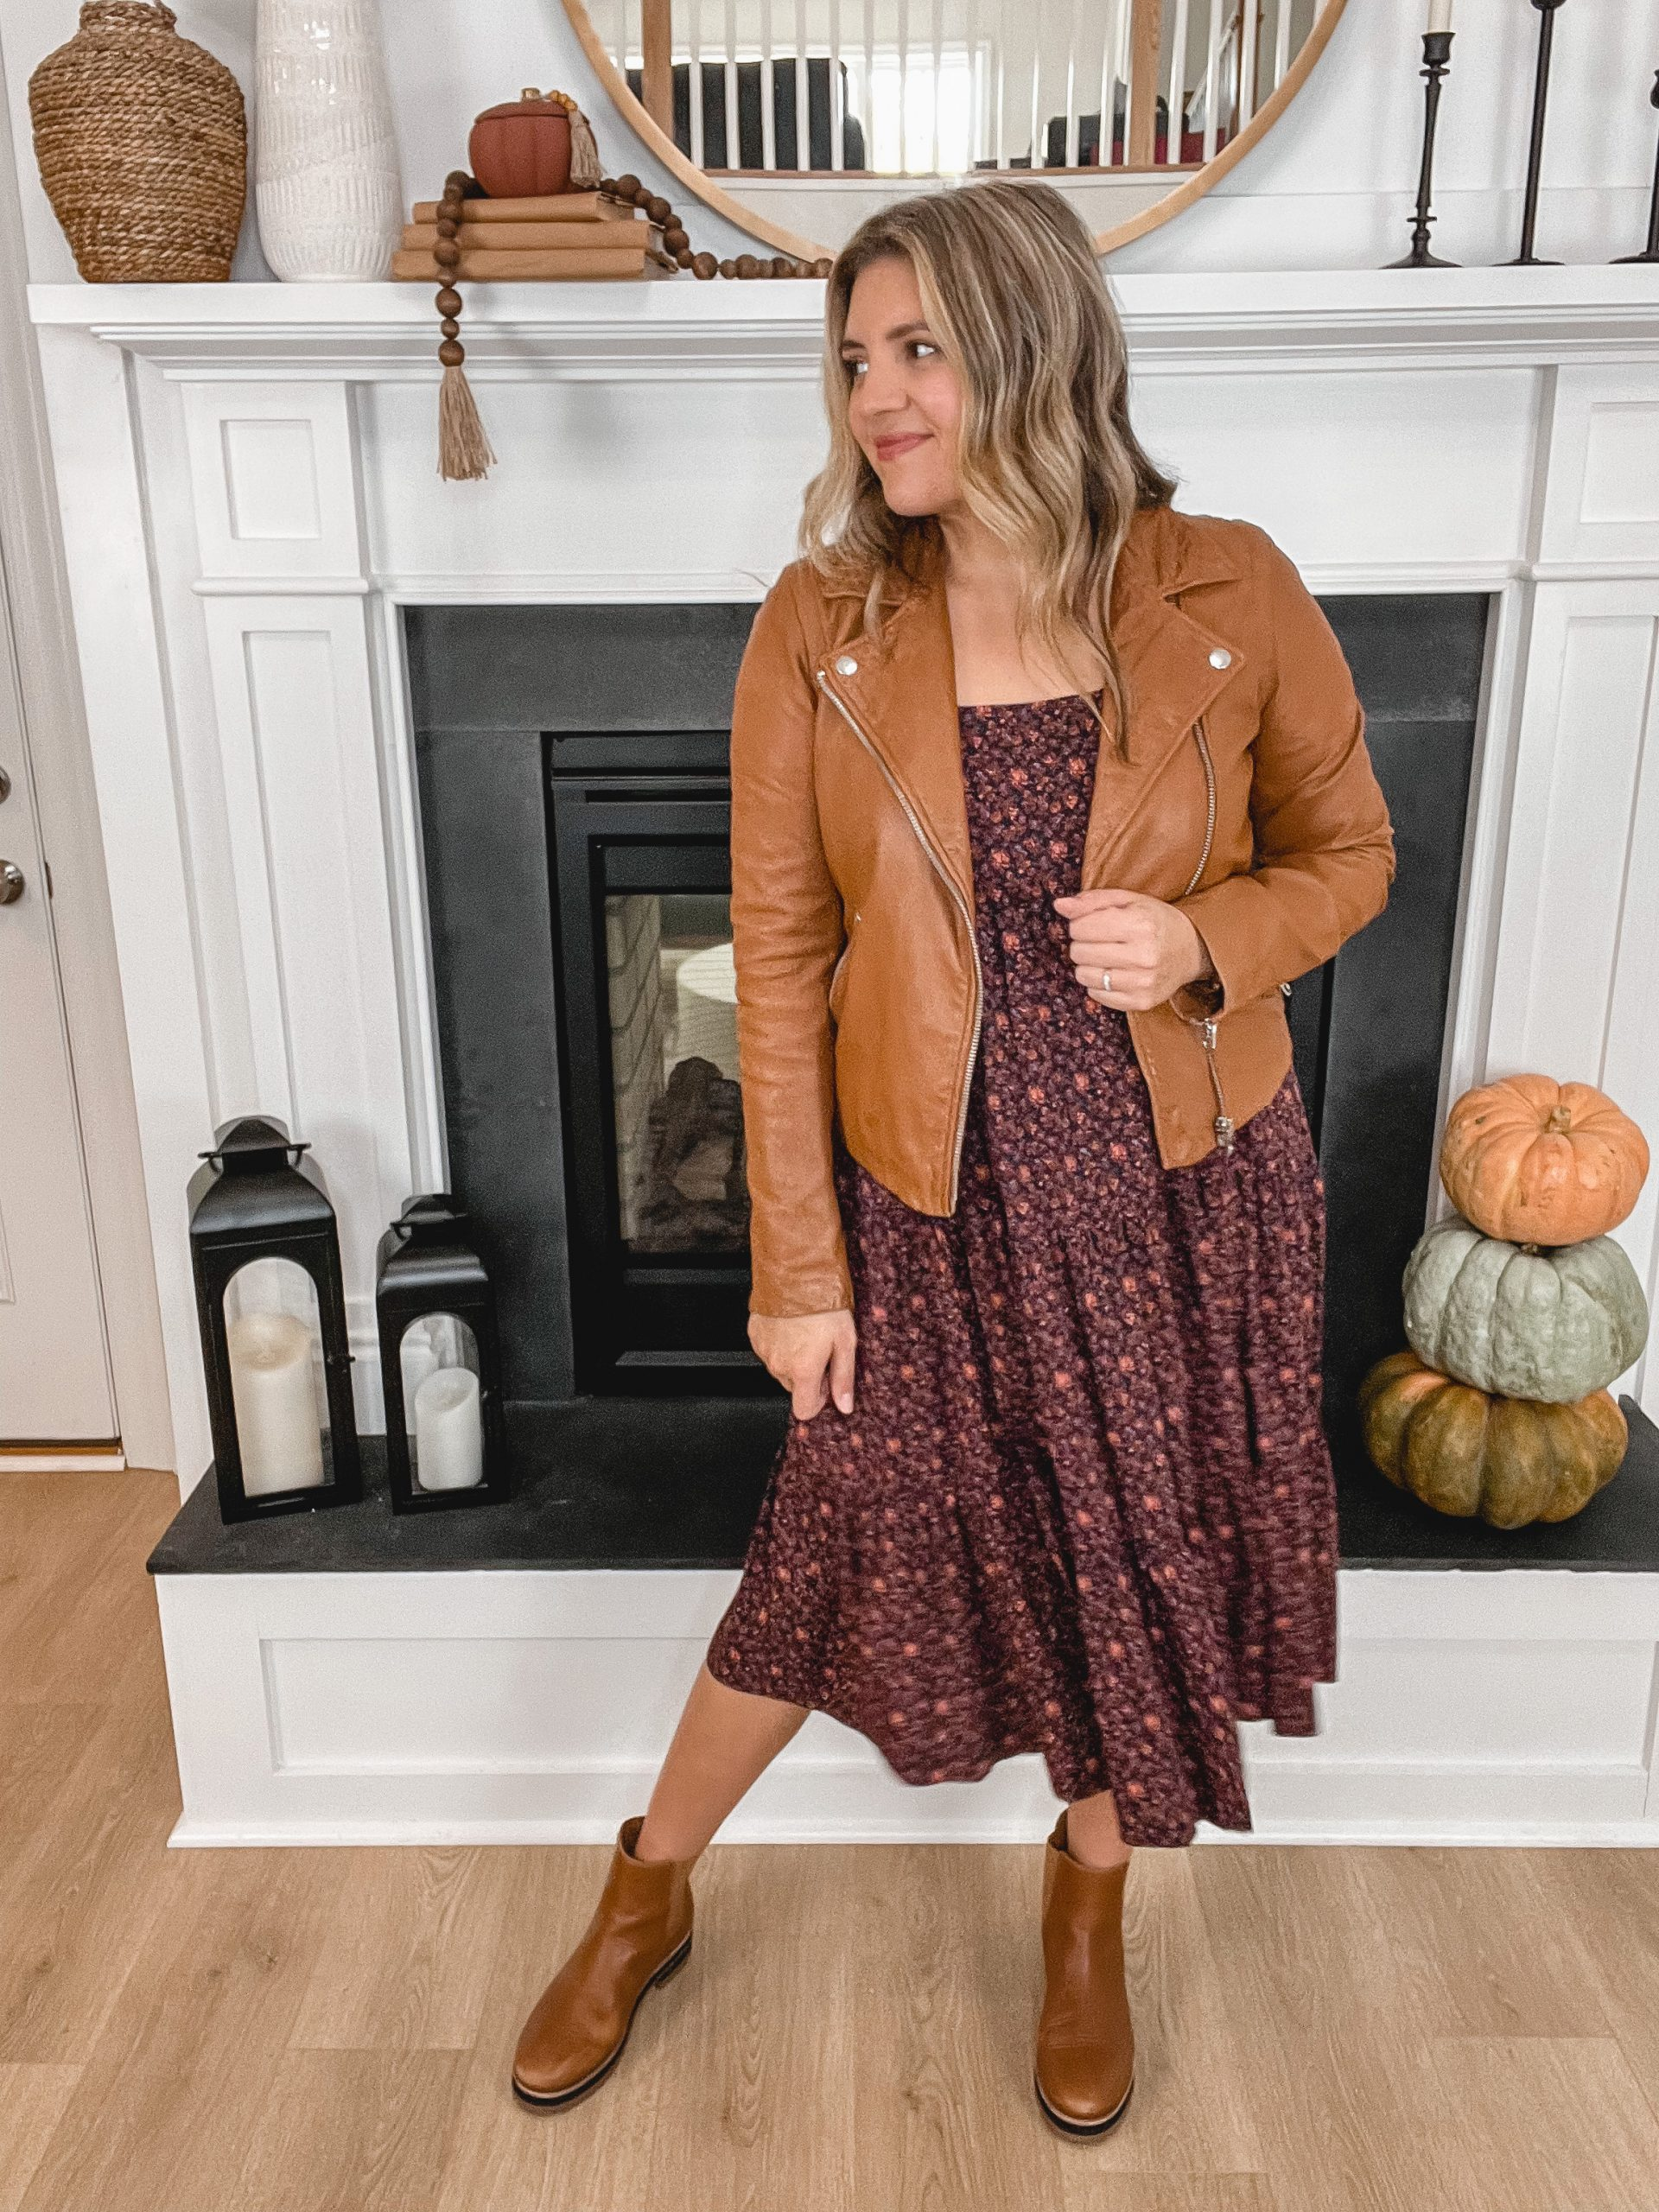 Virginia blogger, Lauren Dix, shares five lug sole chelsea boot outfits for fall and winter!